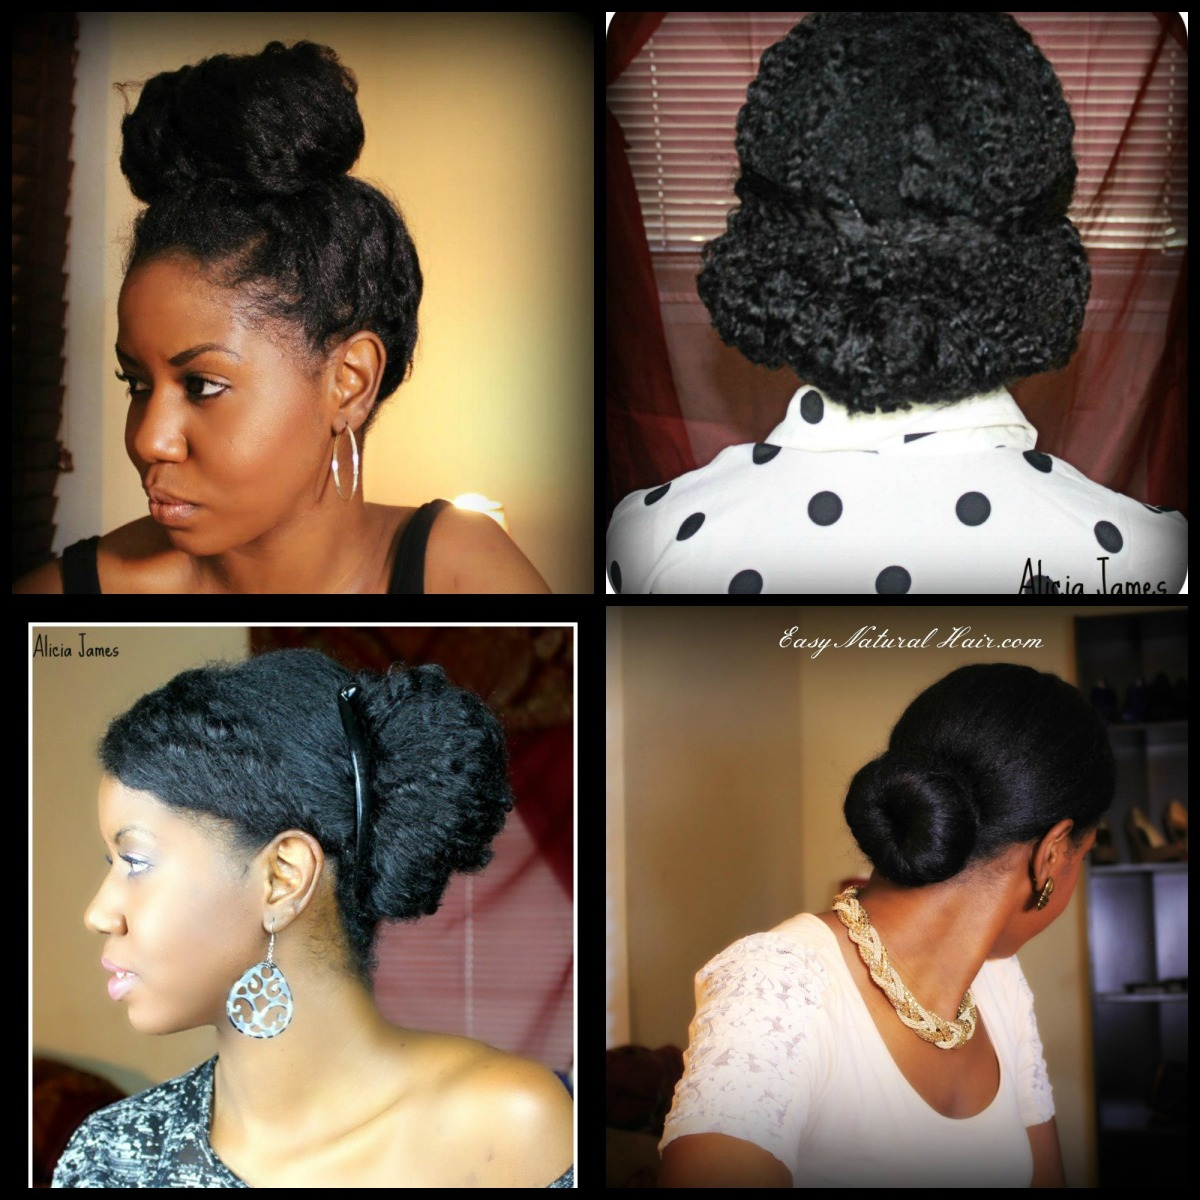 My Top 5 Tips For Bunning Natural Hair ❤ Protective Styling ❤